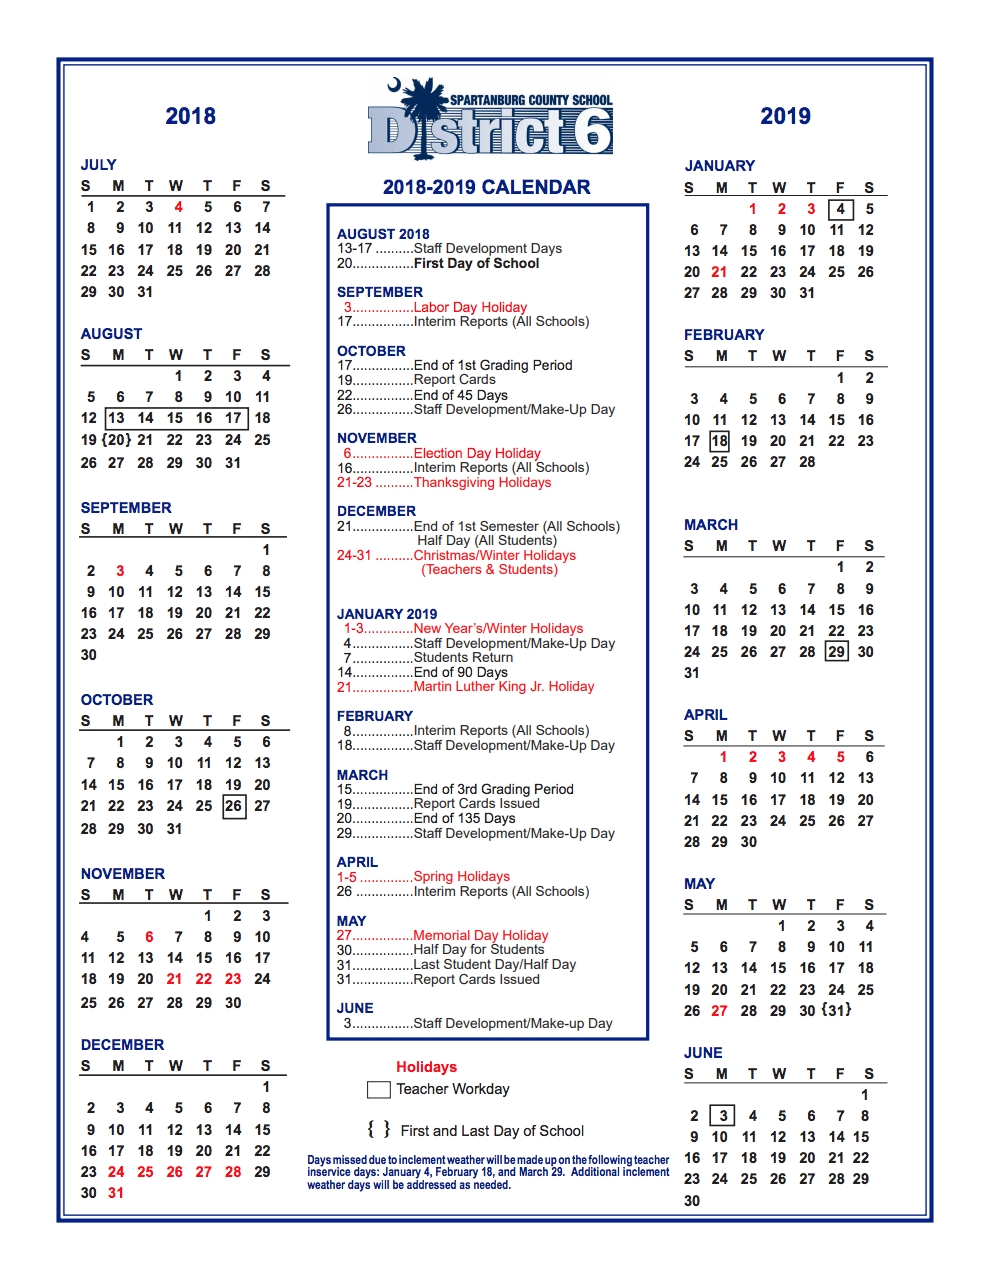 District Calendar – Parents – West View Elementary_Spartanburg District 3 School Calendar